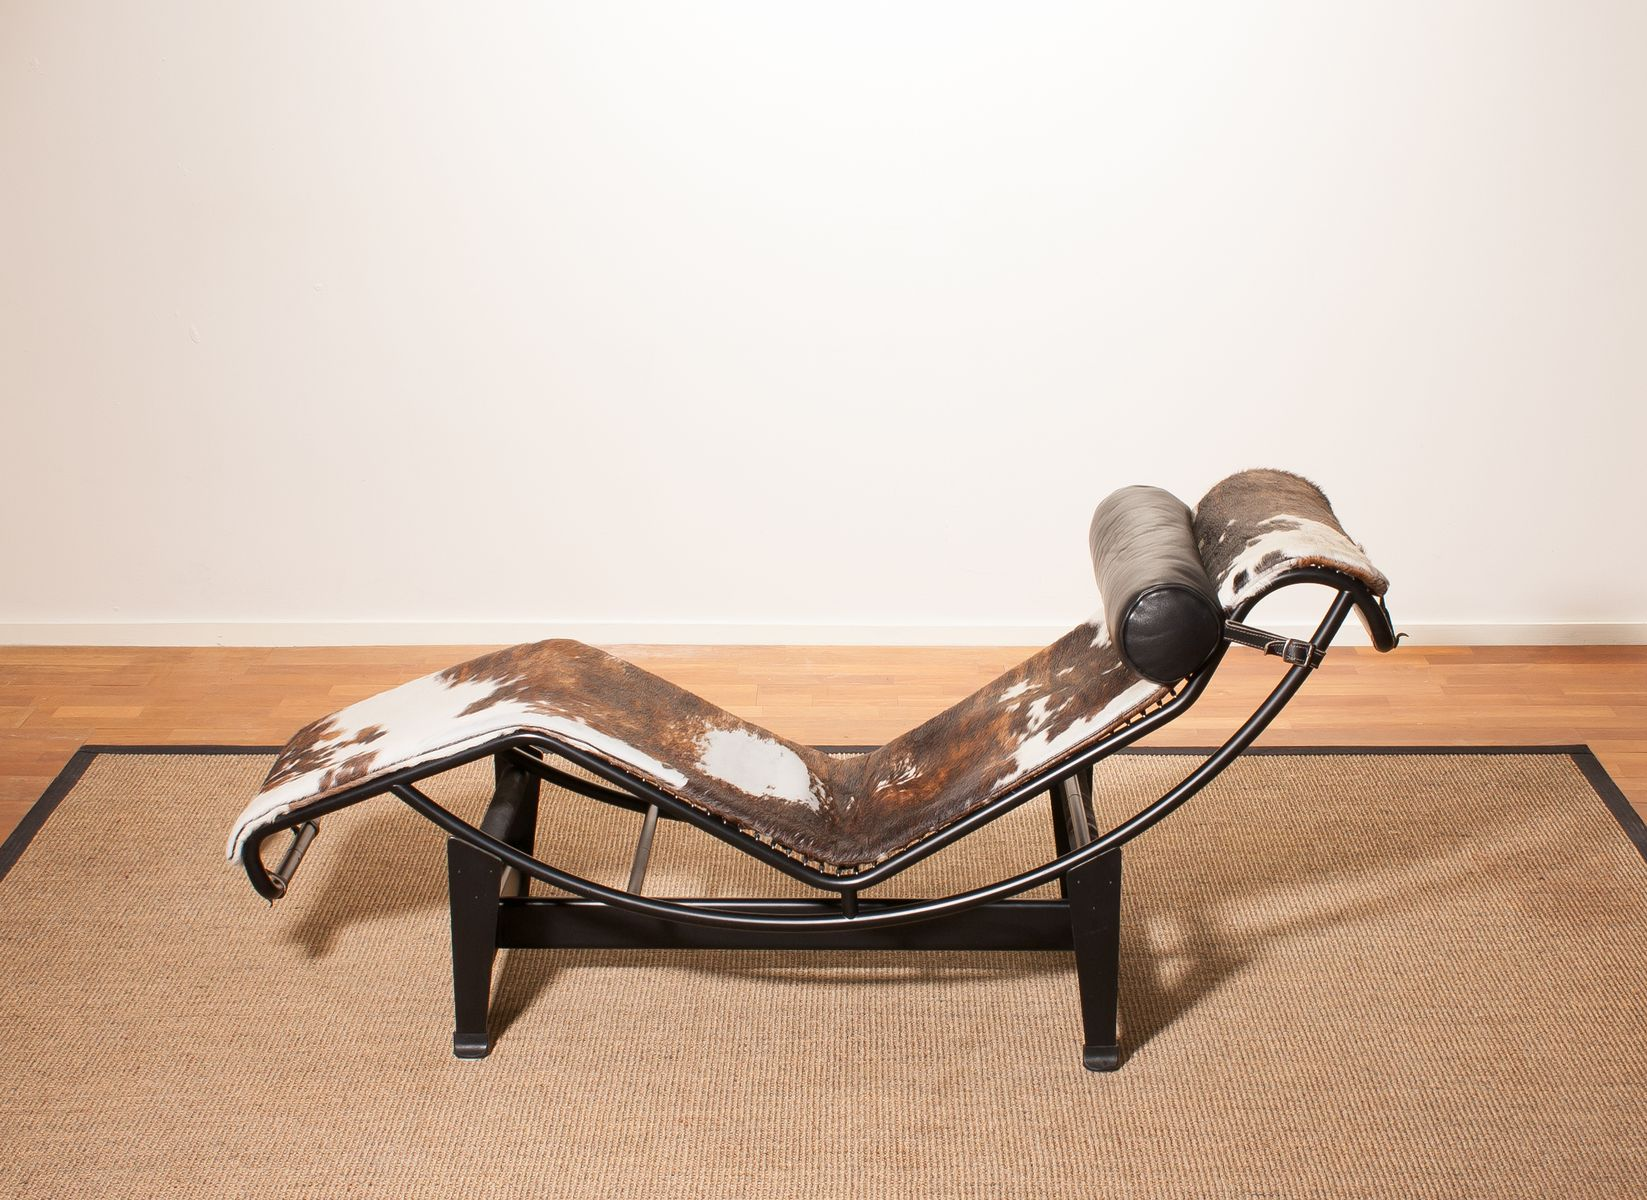 black model lc4 lounge chair by le corbusier for cassina 1970s